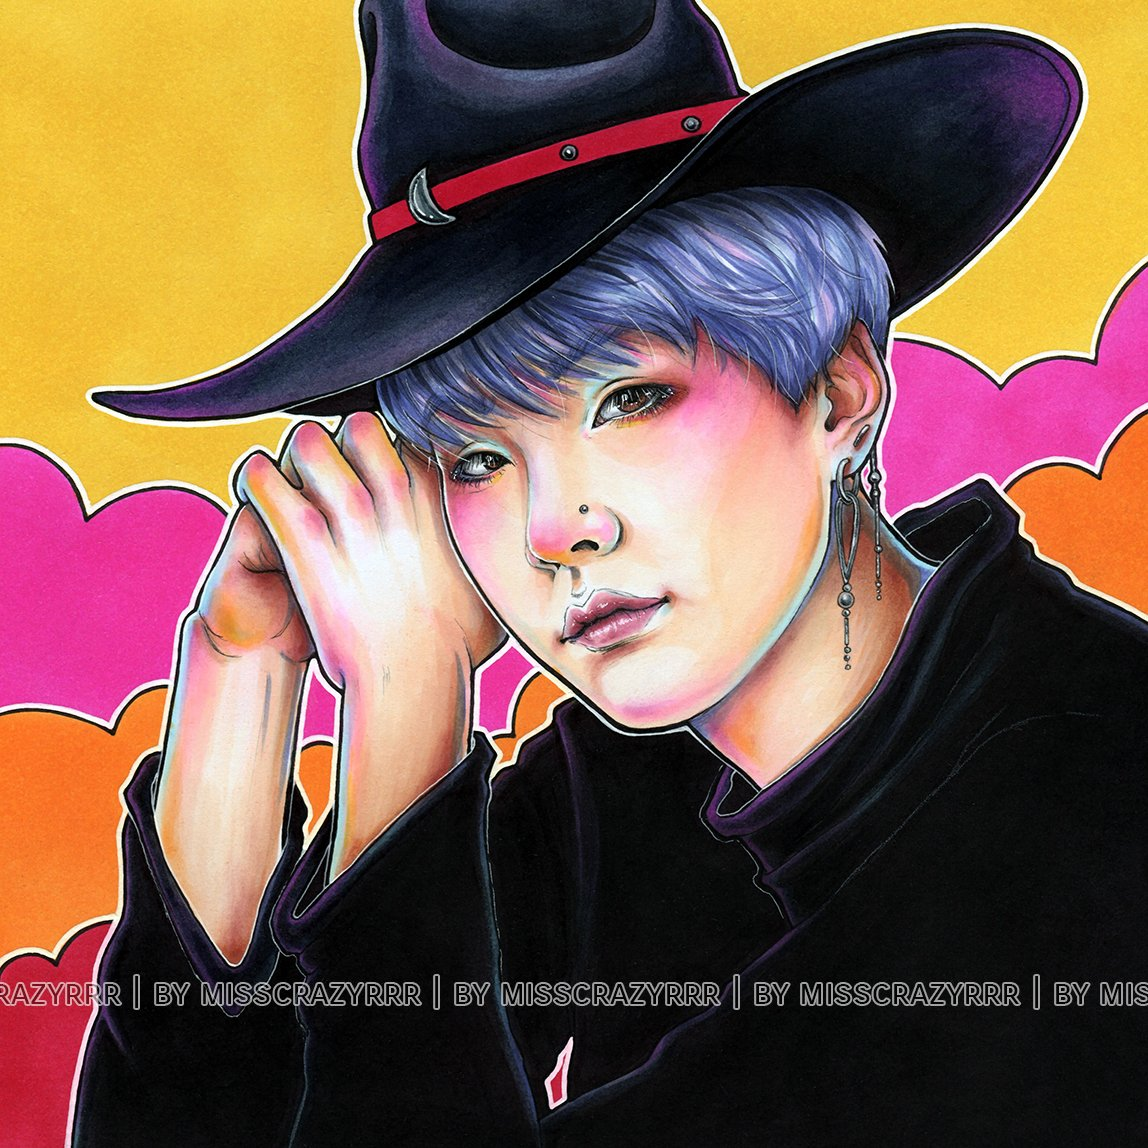 It's a simple simple piece, but I really like the colors~ How abt u? #art #fanart #bts #btsfanart #agustd #suga #yoongi #halloween #witch #Witchtober2020 #copicart #copicmarkers #traditionalart #mixmedia #mad #king #crazy #ink #inking #pastels #mixtape #minyoongi https://t.co/uwMBBuq1EI